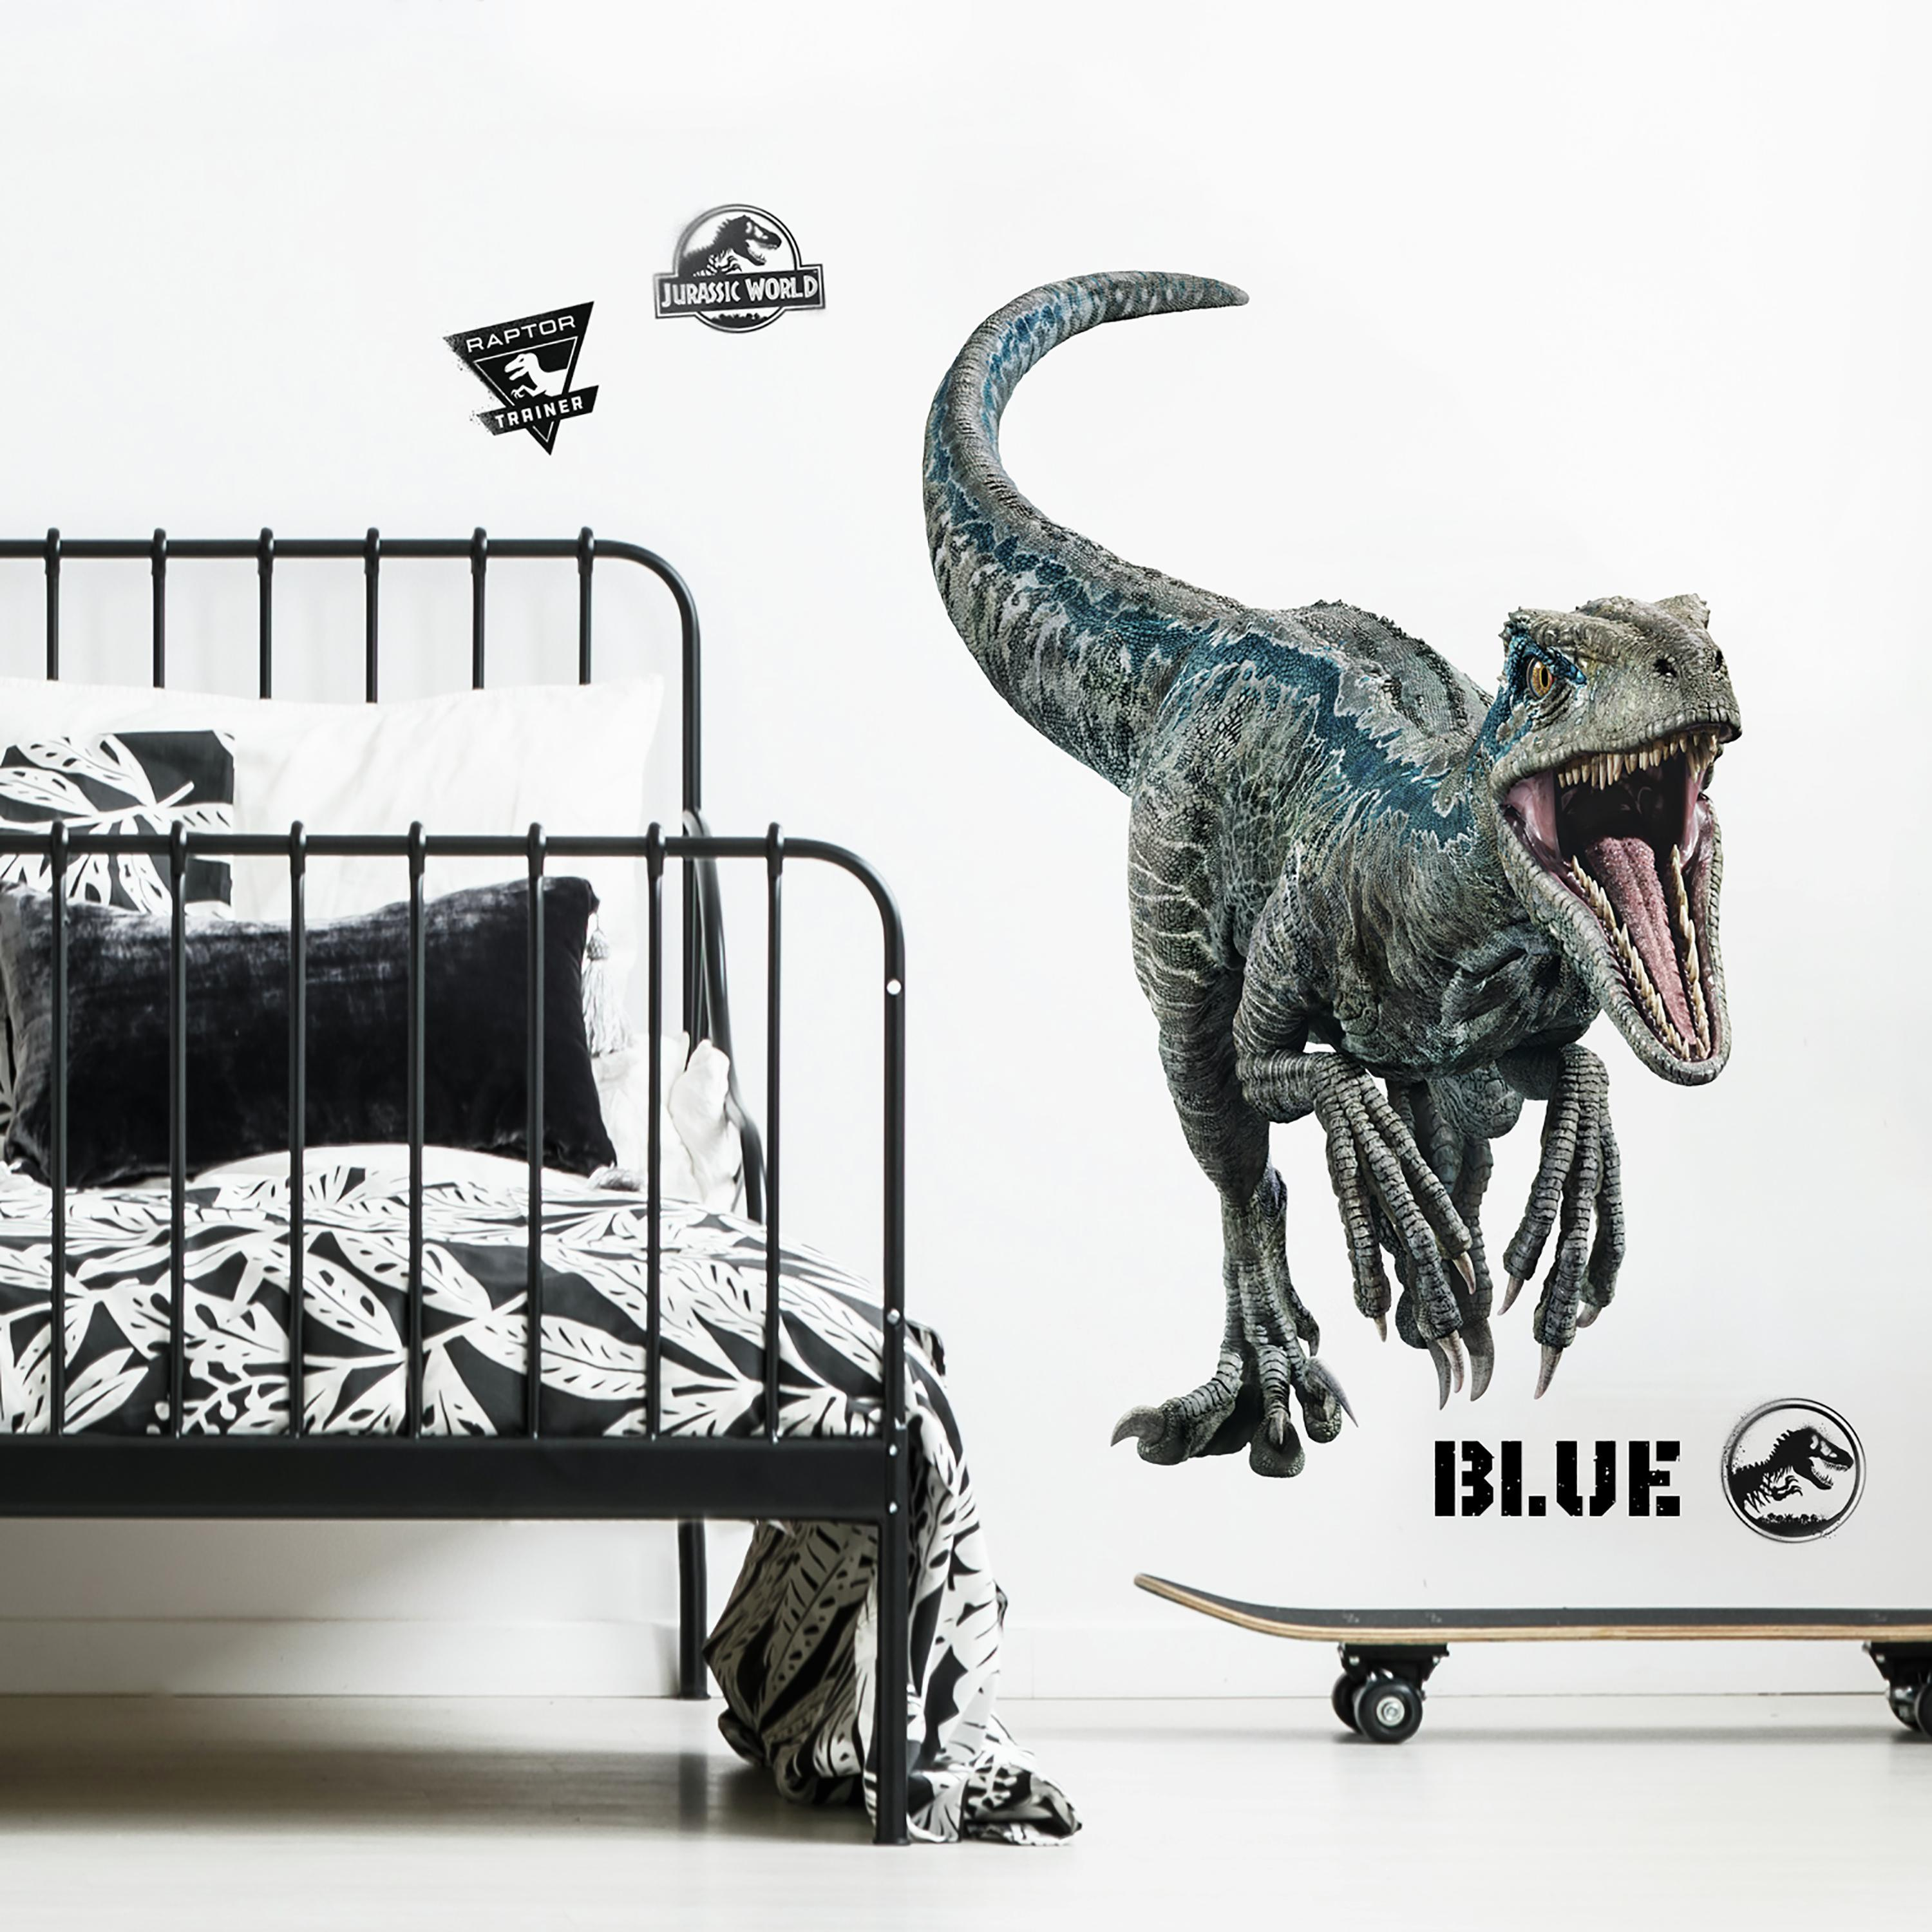 Jurassic World 2 Blue Velociraptor Giant Wall Decal